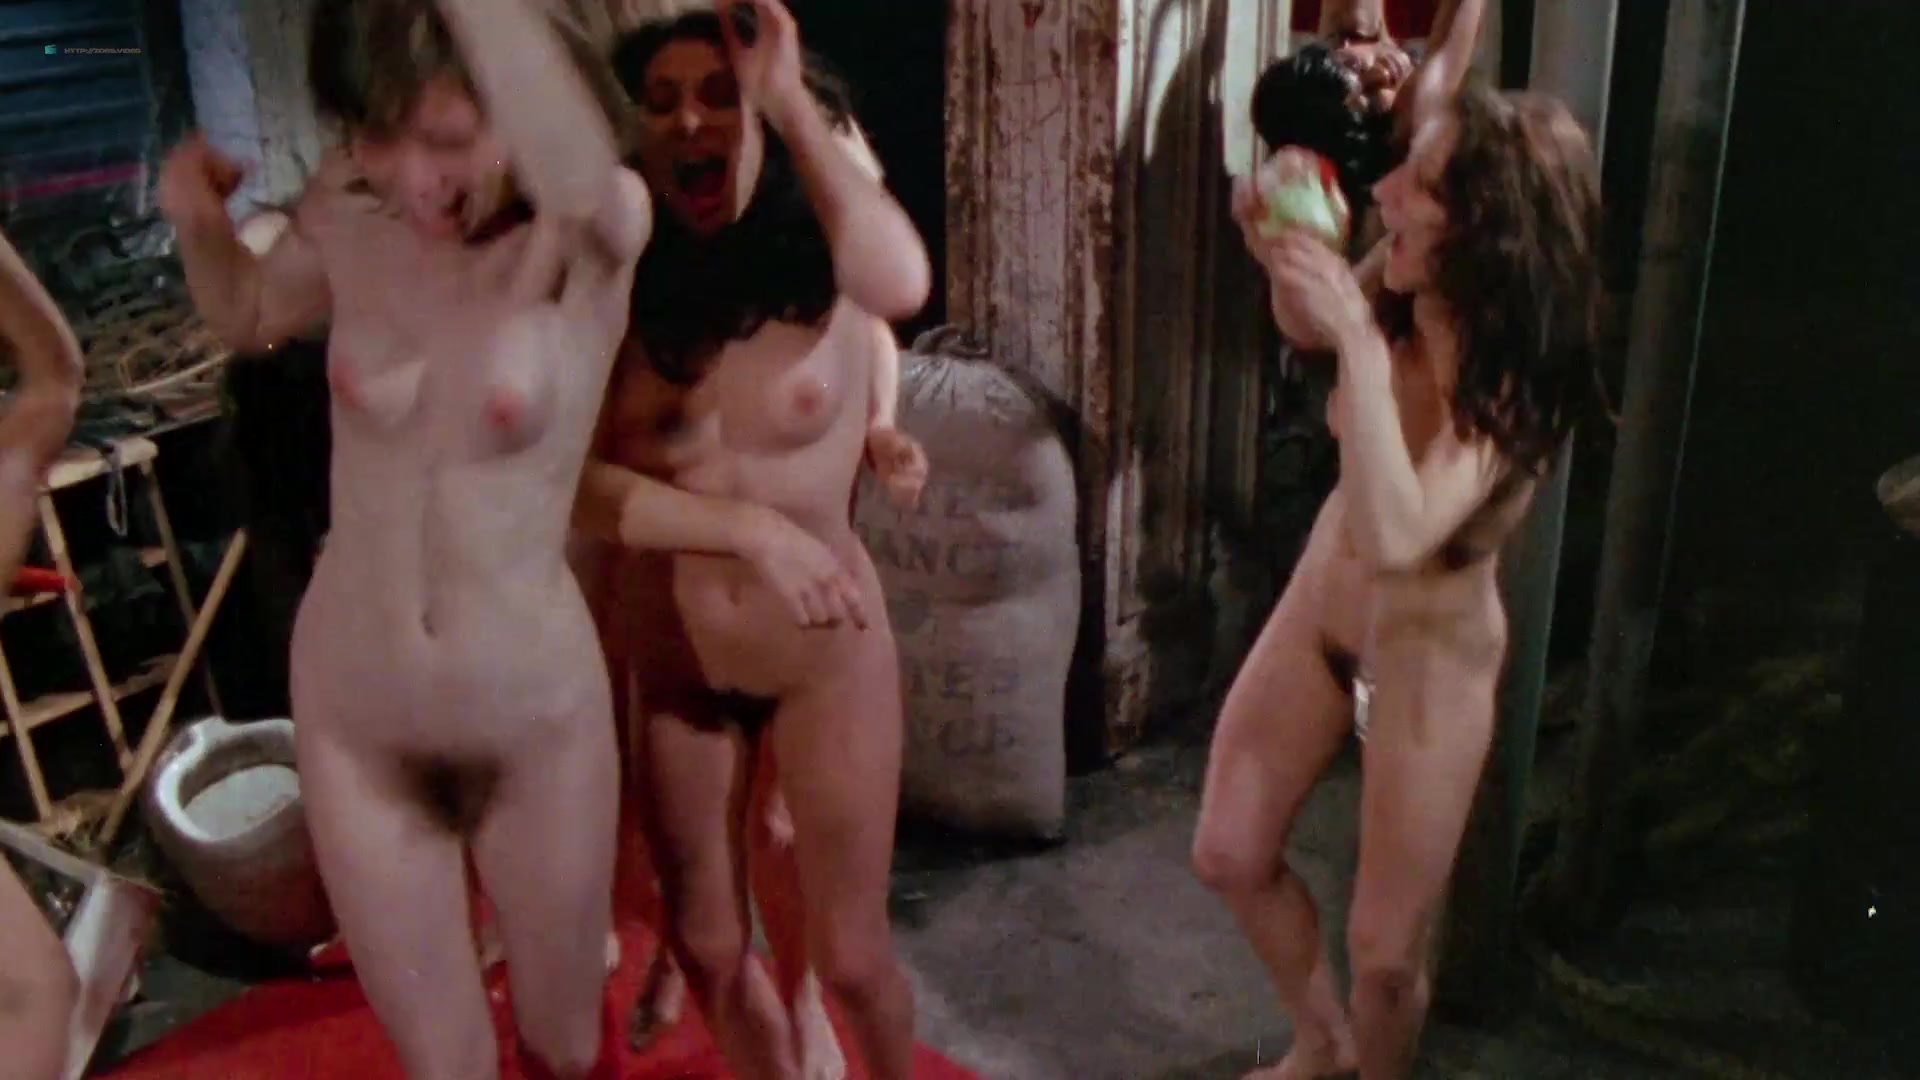 Viju Krem nude, Arlana Blue nude, Jennifer Stock nude - Bloodsucking Freaks (1976)